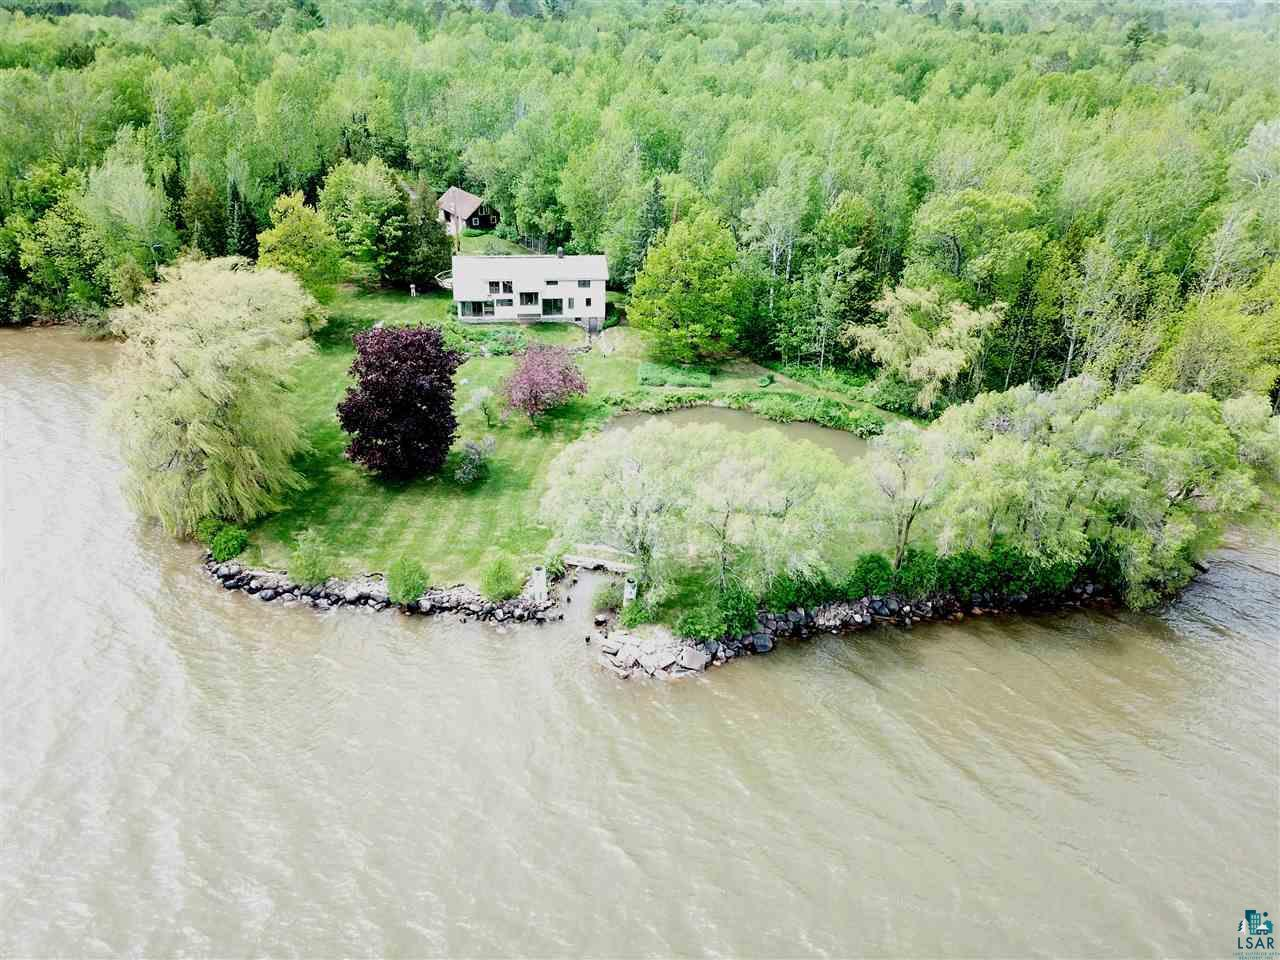 No doubt on e of the nicest parcels on the Chequamegon Bay of Lake Superior!  Parklike setting with your own lagoon that the sellers have docked a boat in the past.  Level lakeshore point with sunrise views.  3 bedroom, 1 bath home with a detached garage.  Awesome fishing from this shoreline.  Stone fireplace for relaxing in front of during the winter months on the lake.